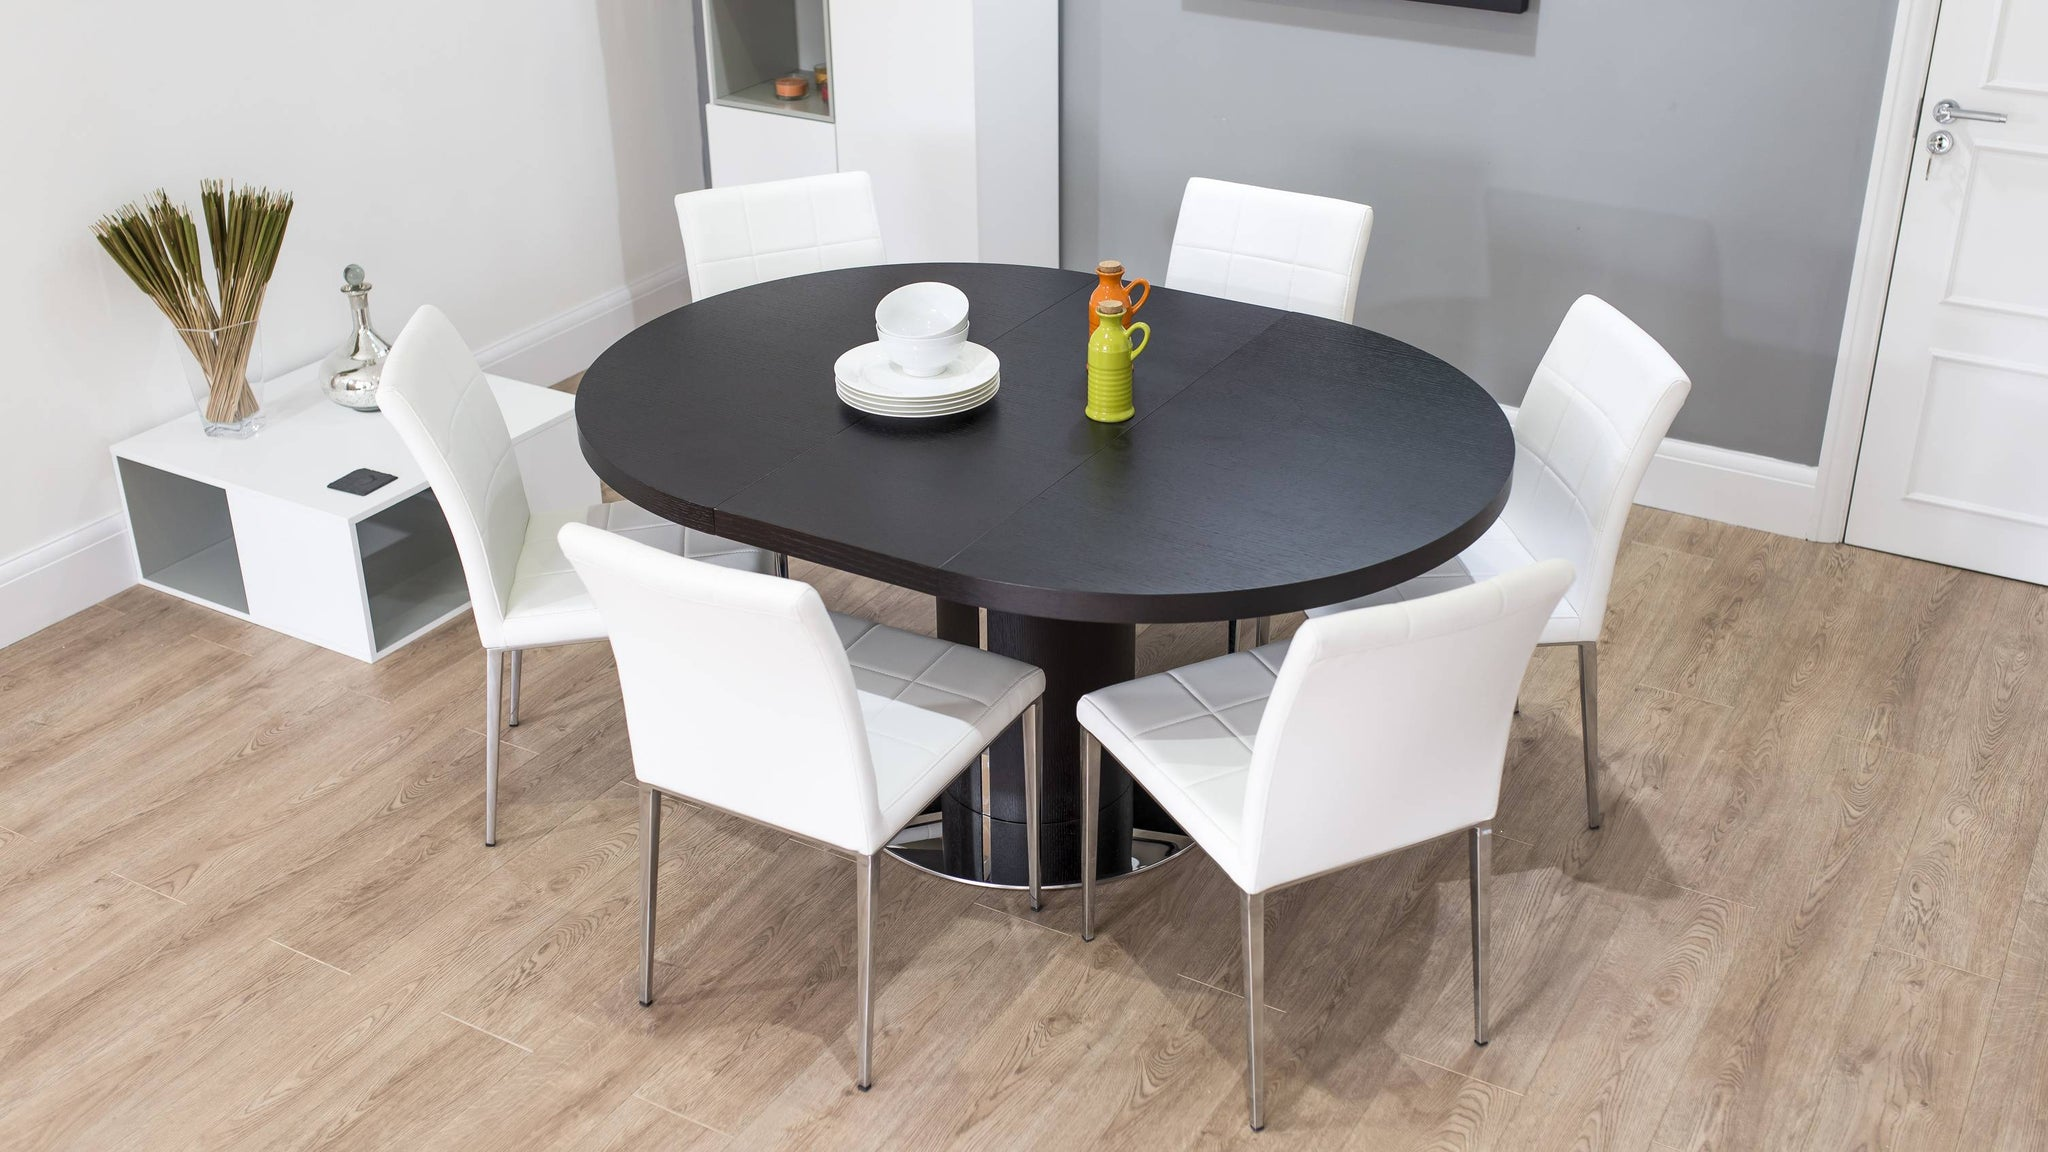 Oval Dark Wood Extending Dining Table and White Chairs